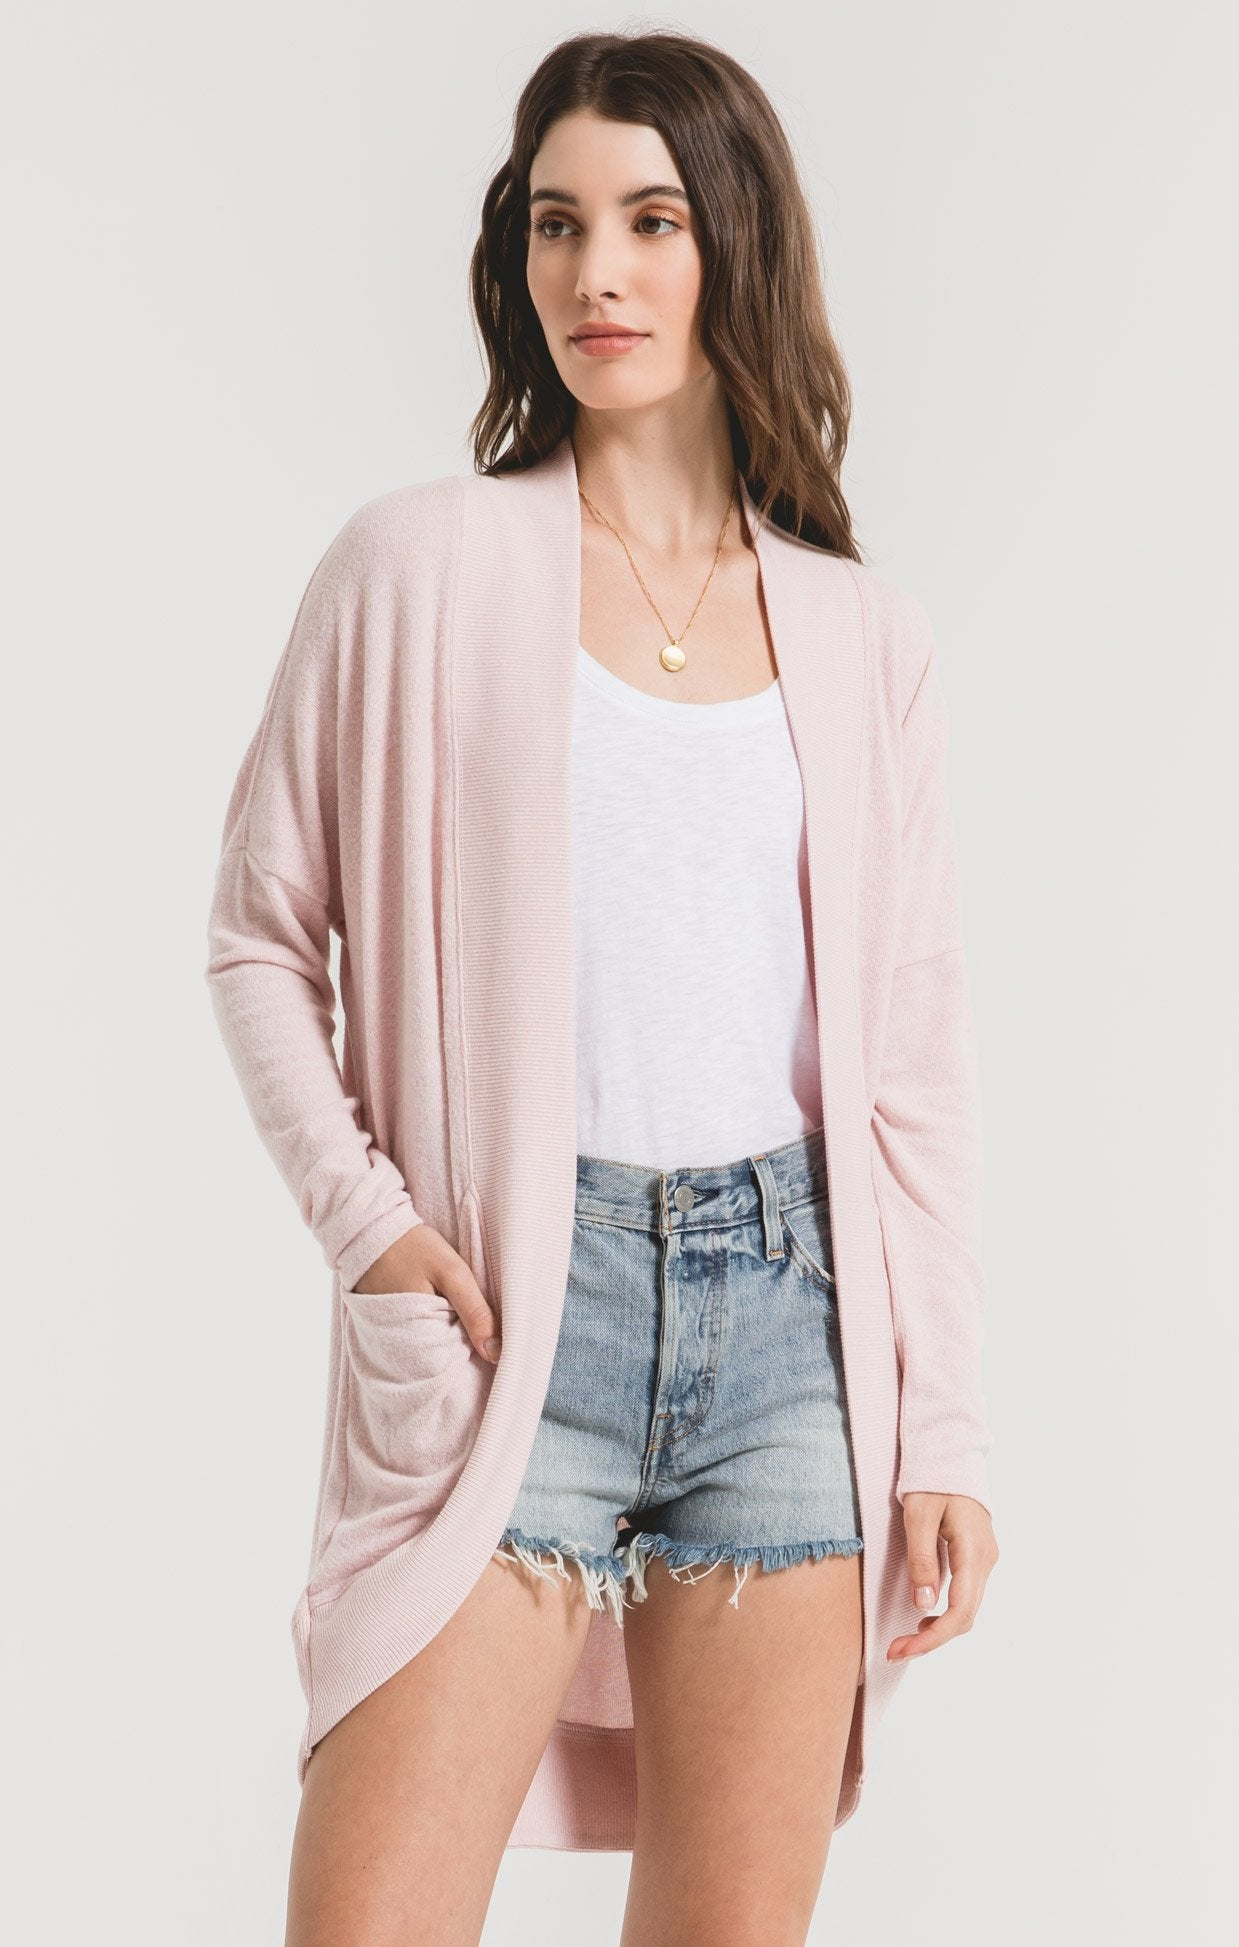 Jackets The Marled Sweater Knit Cocoon Cardigan Pale Blush/Ivory